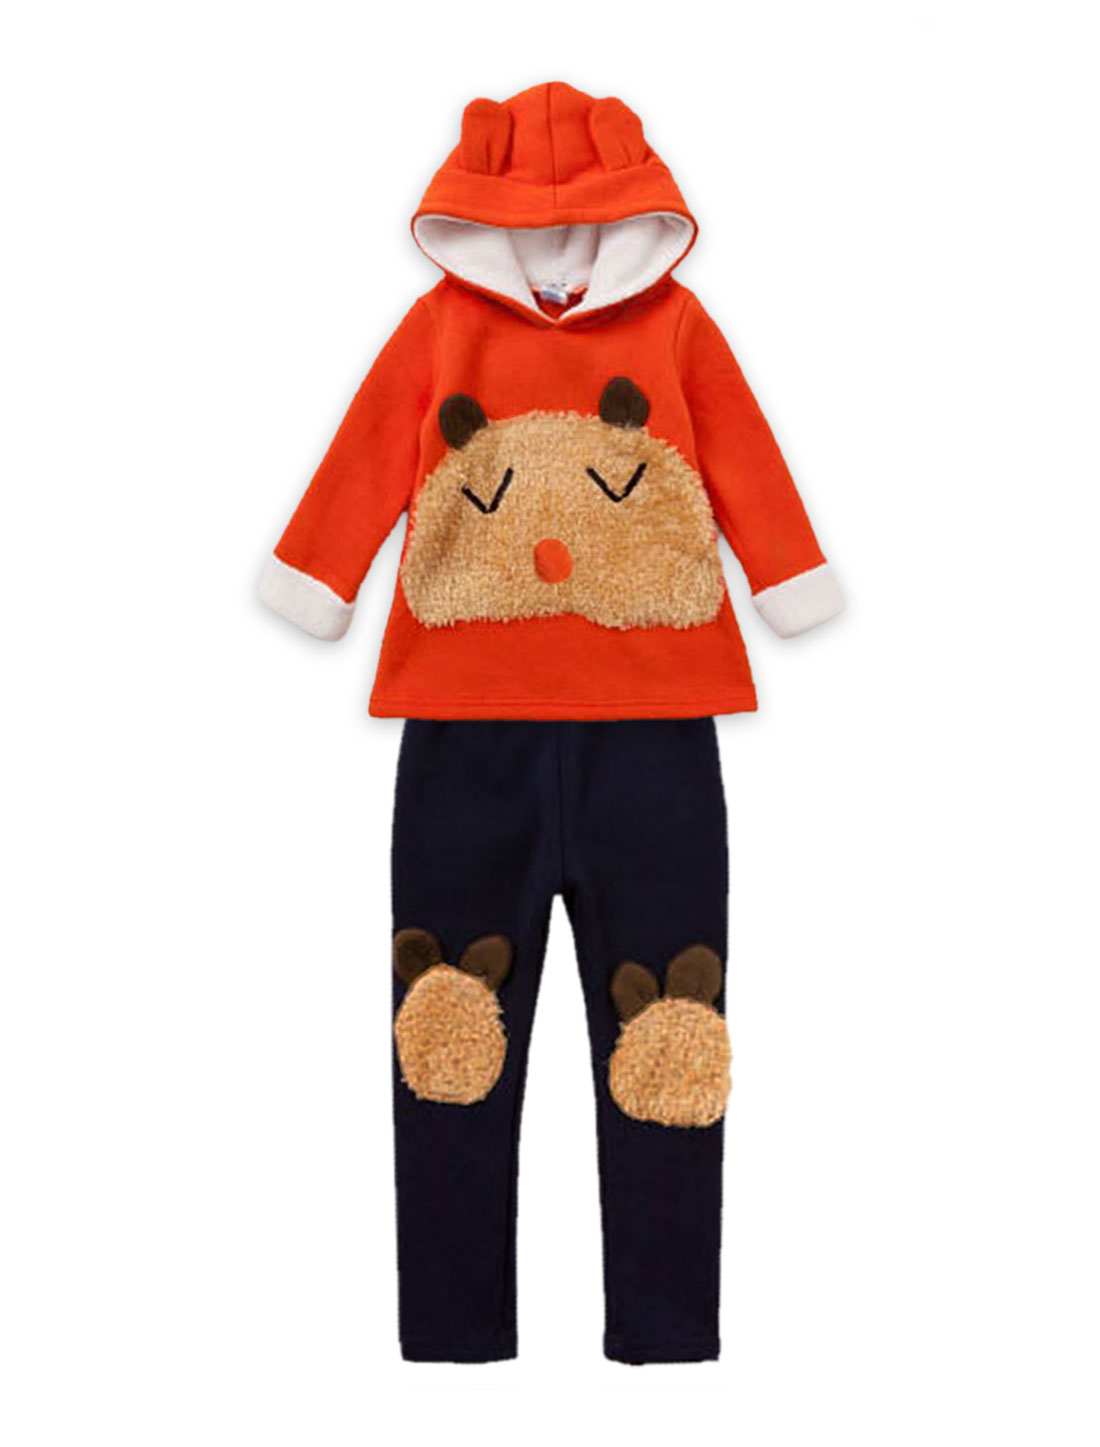 Girls Hooded Cartoon Bear Tops & Soft Pants Orange Red Navy Blue 2T